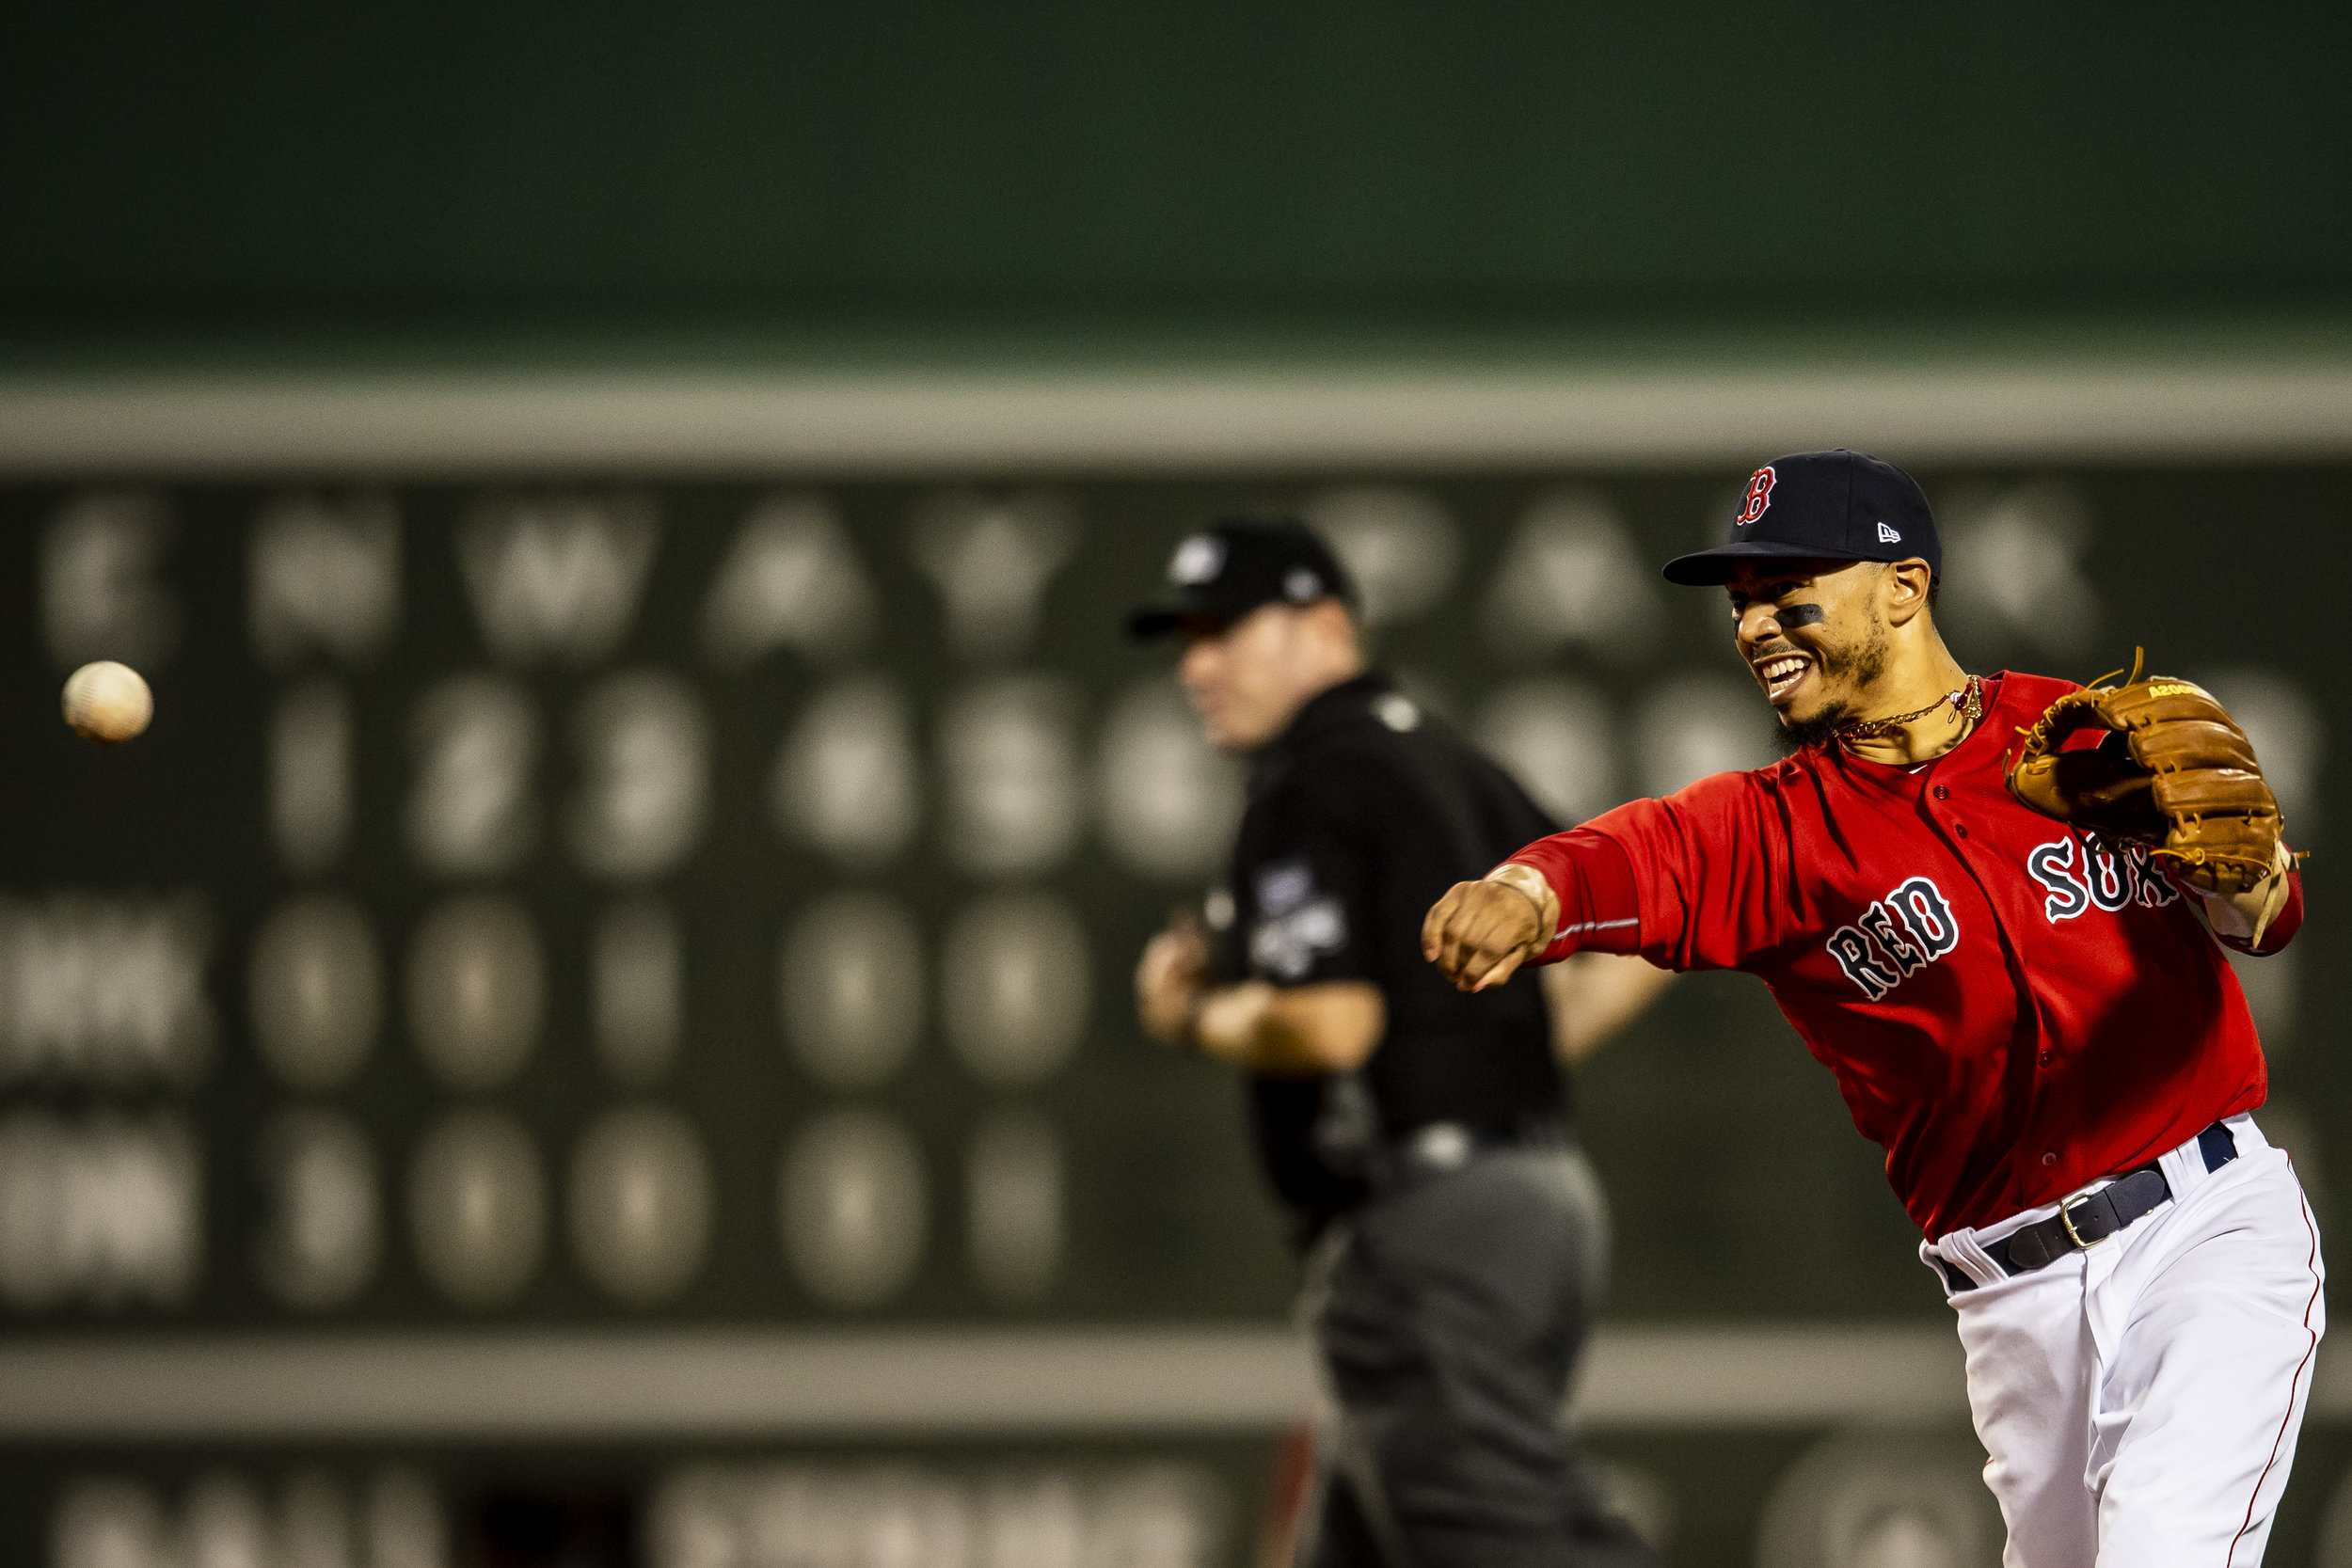 August 3, 2018, Boston, MA: Boston Red Sox second baseman Mookie Betts fields the ball as the Boston Red Sox face the New York Yankees at Fenway Park in Boston, Massachusetts on Friday, August 3, 2018. (Photo by Matthew Thomas/Boston Red Sox)